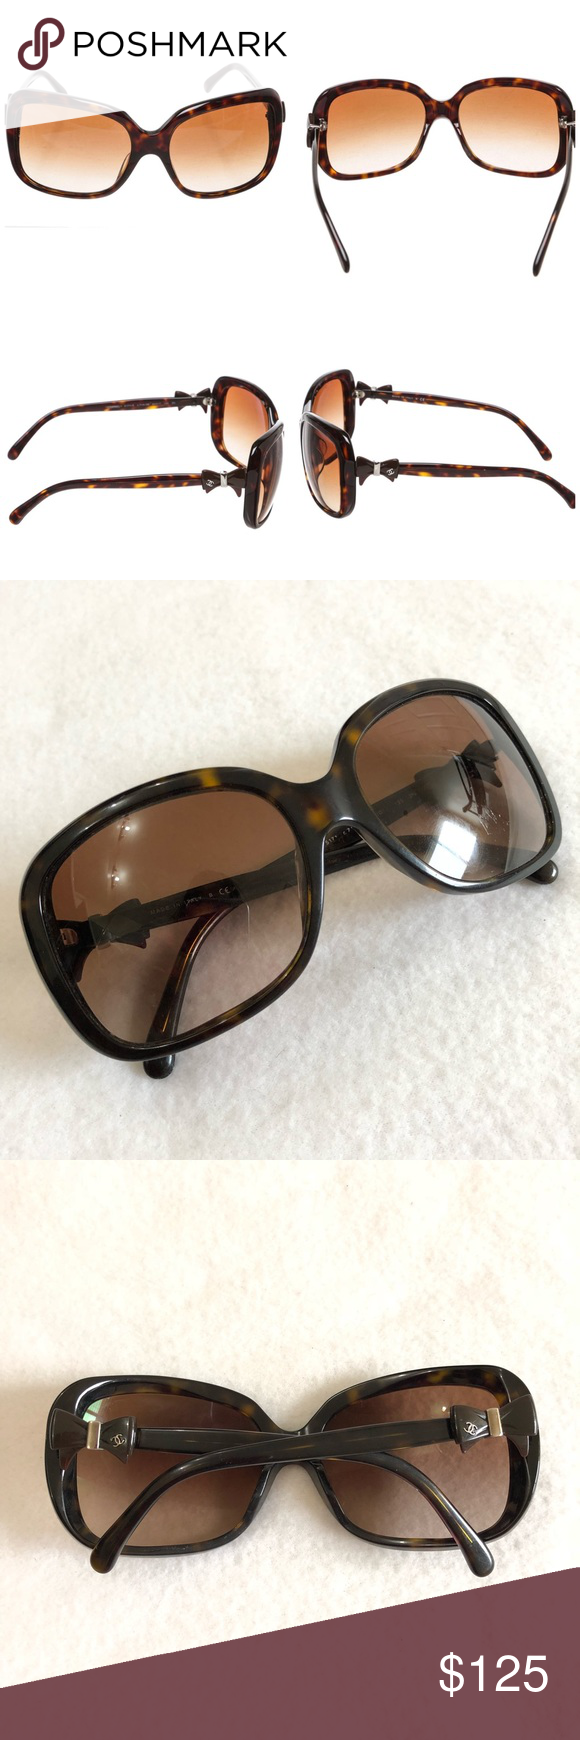 c2abb1eac25 These are Chanel brown plastic tortoise shell bow sunglasses 5171-a  c.714 3B WELL USED w scratches and marks. No box. CHANEL Accessories  Sunglasses